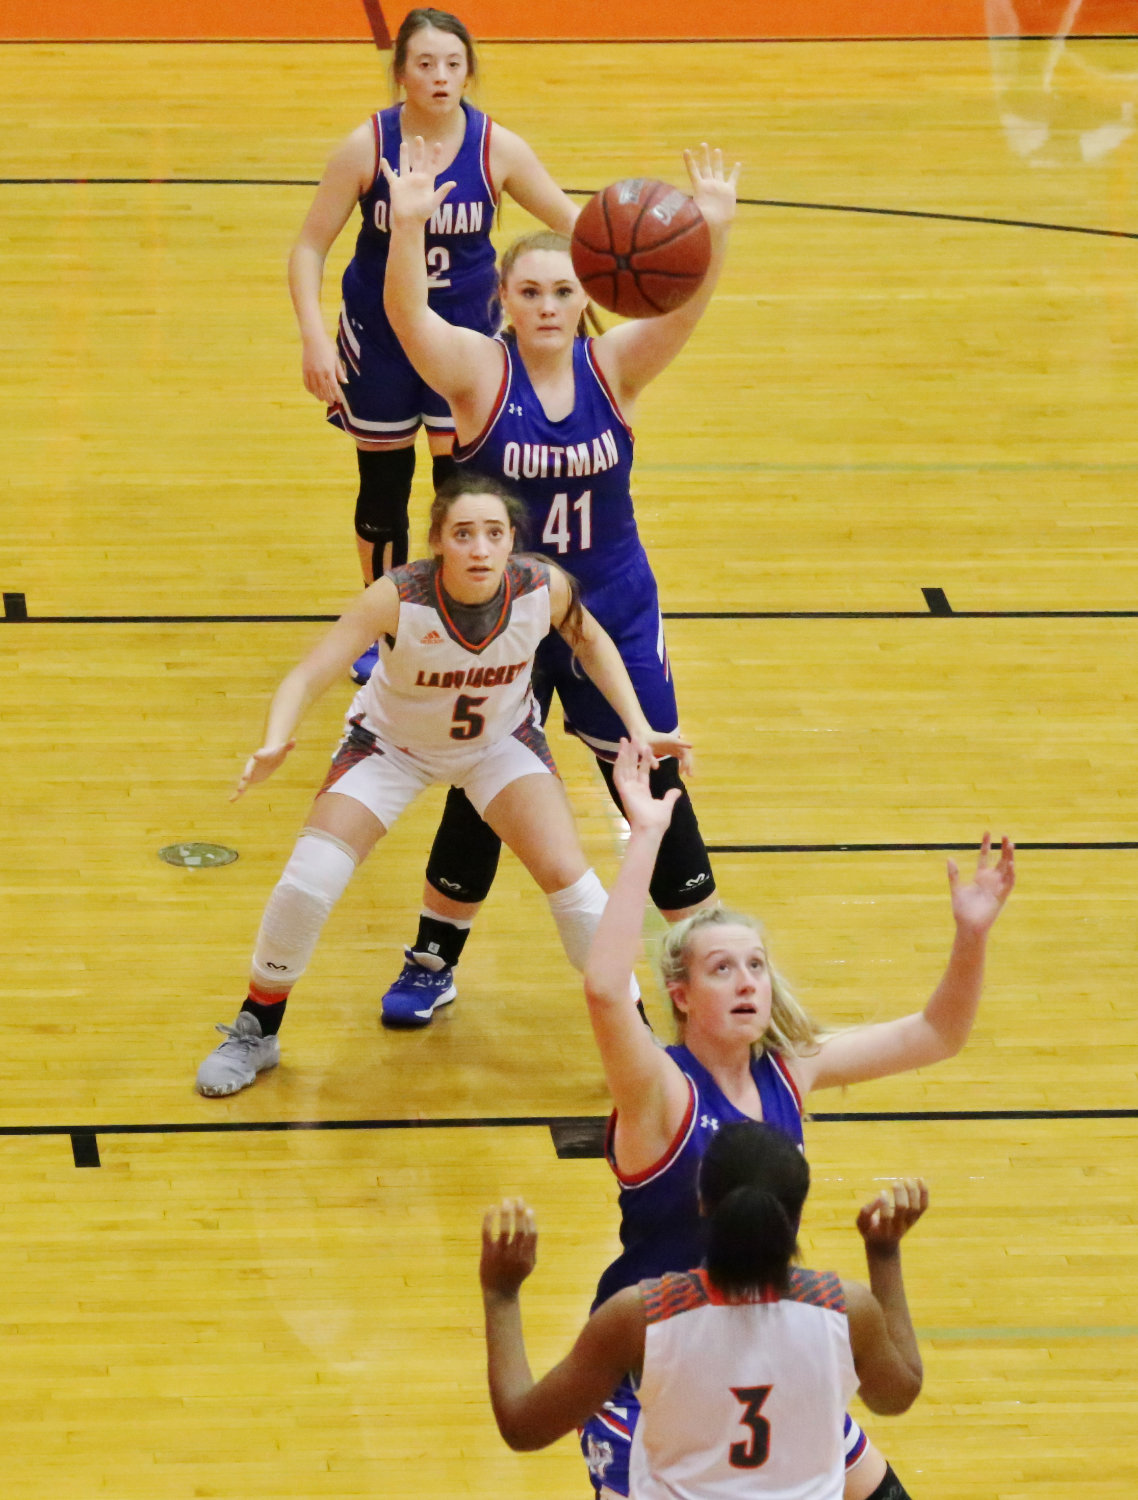 Lady Jacket Kelsey Brewington (5) guarded by Quitman's Reiny Luman (41) prepares to take a pass from Sabria Dean (3) in action last Friday.